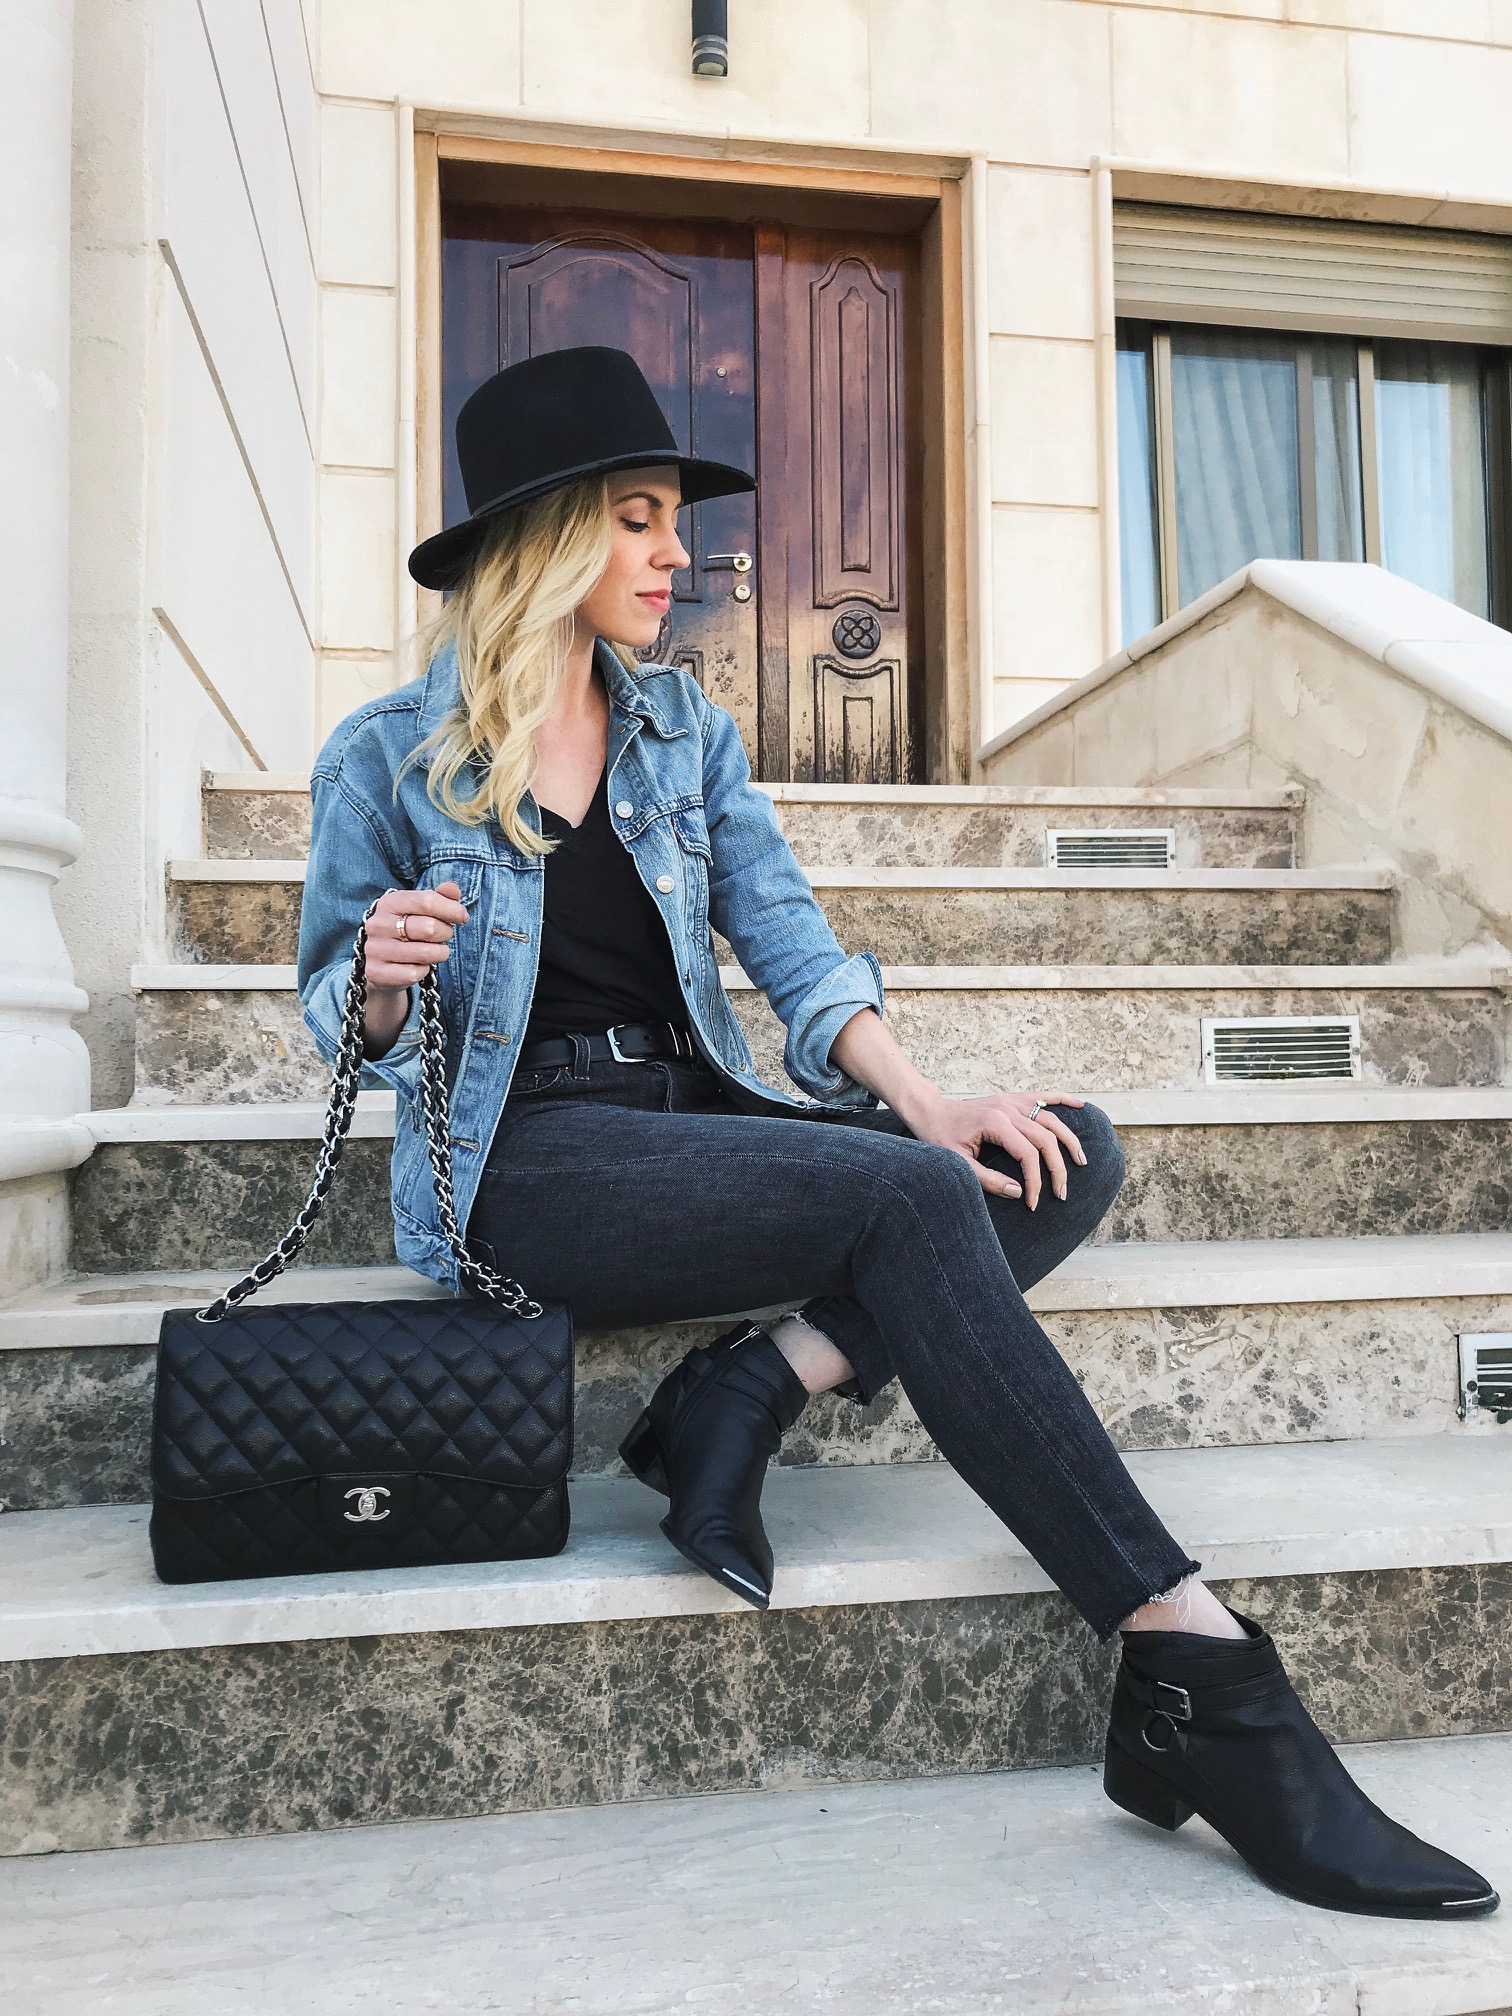 Meagan Brandon fashion blogger of Meagan's Moda shares closet essentials under $75 including Levi's denim jacket and jeans